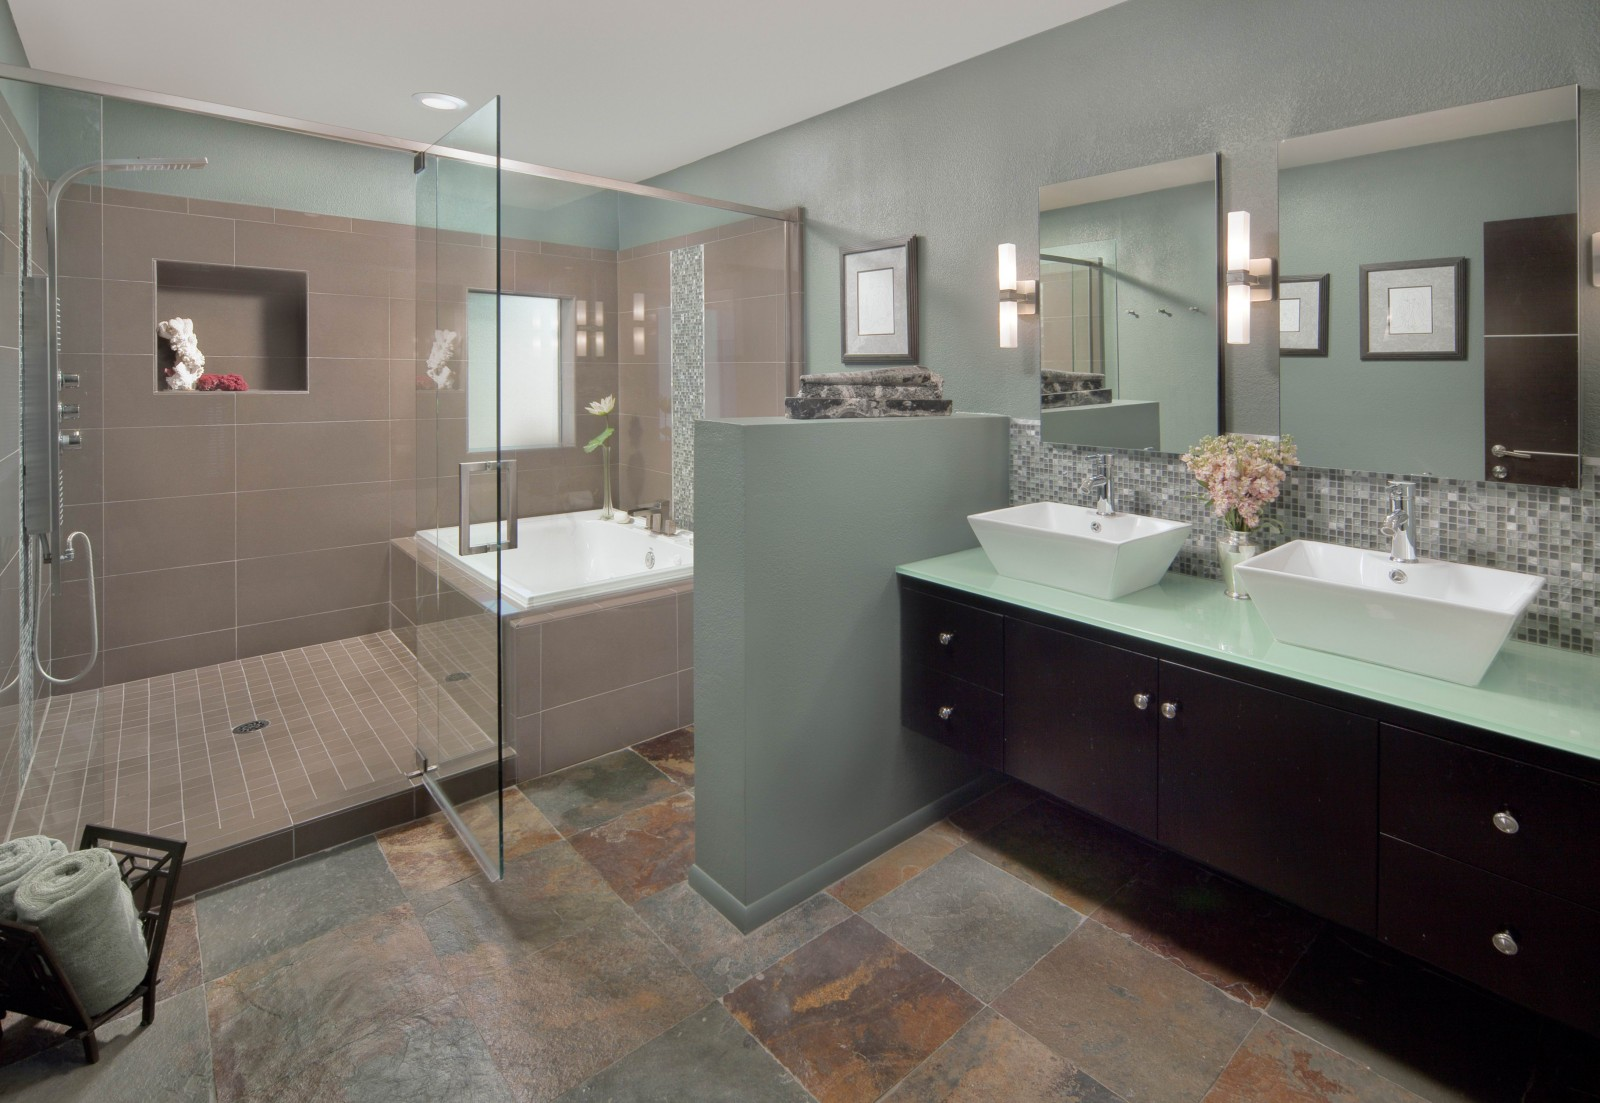 Revamping your master bathroom peter mickus for Small master bathroom remodel ideas